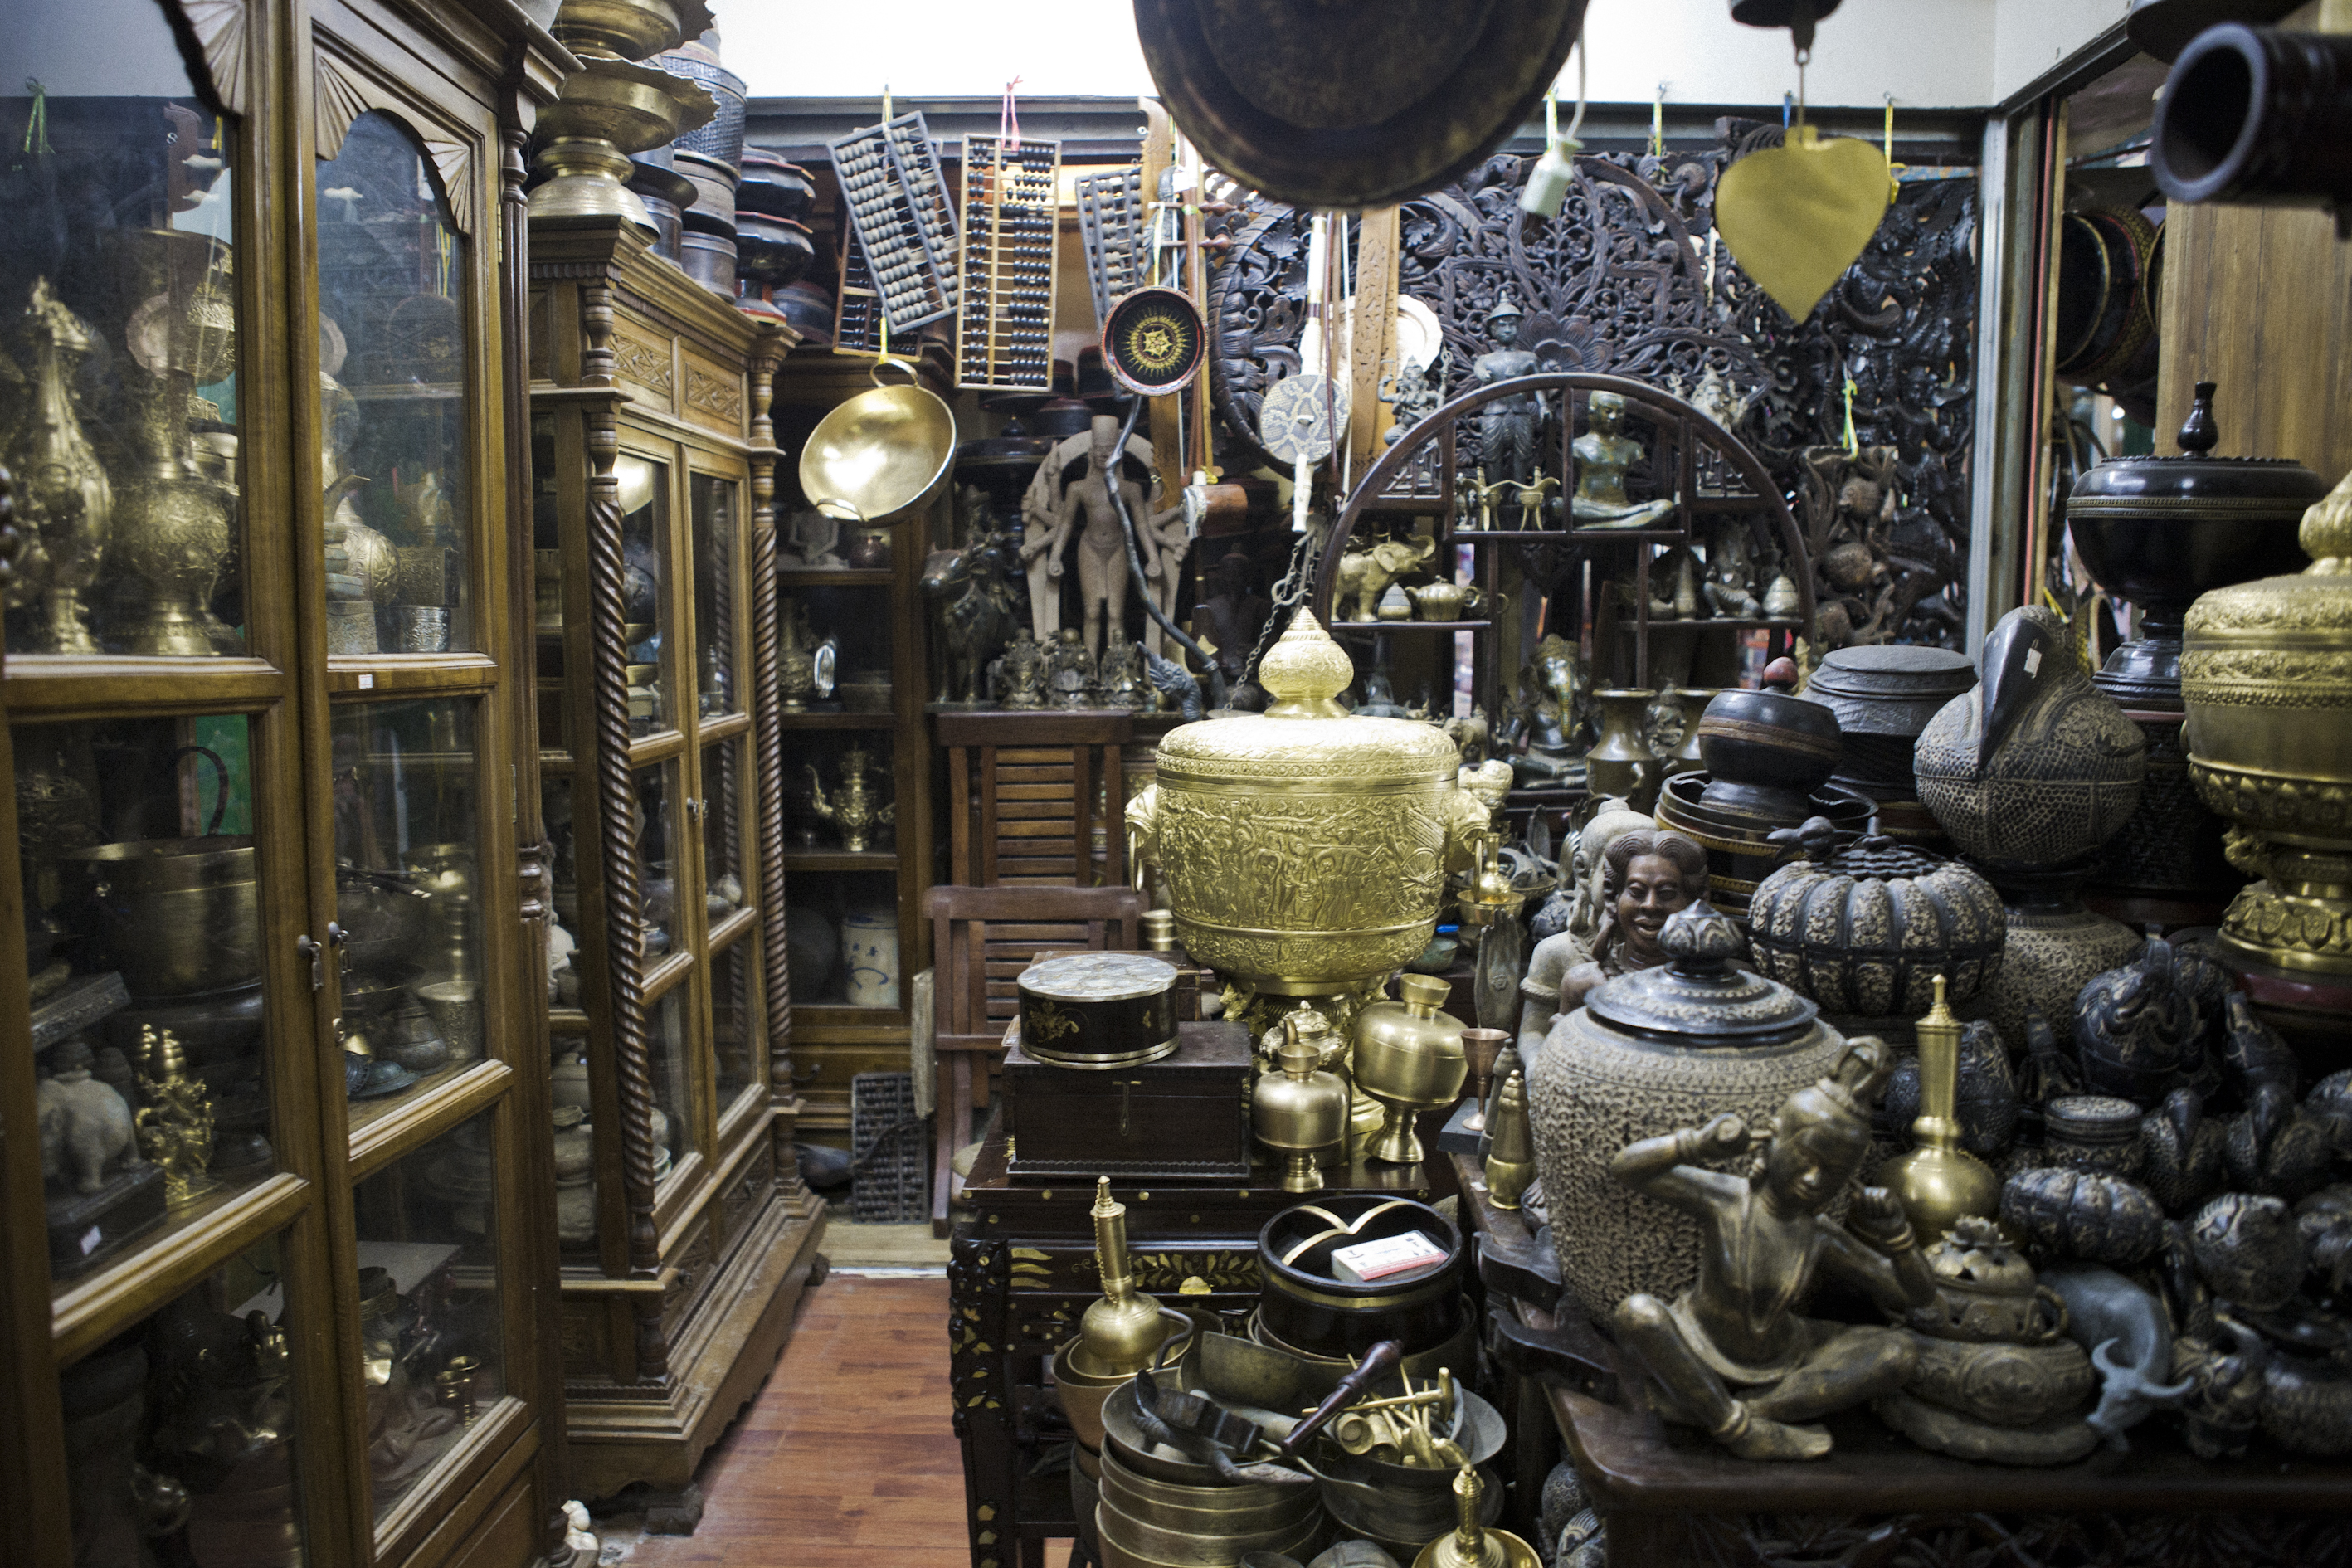 Bronzeware, Statues, Collectibles Phnom Penh Cambodia Asia Antiques Buying Tours with The Antiques Diva